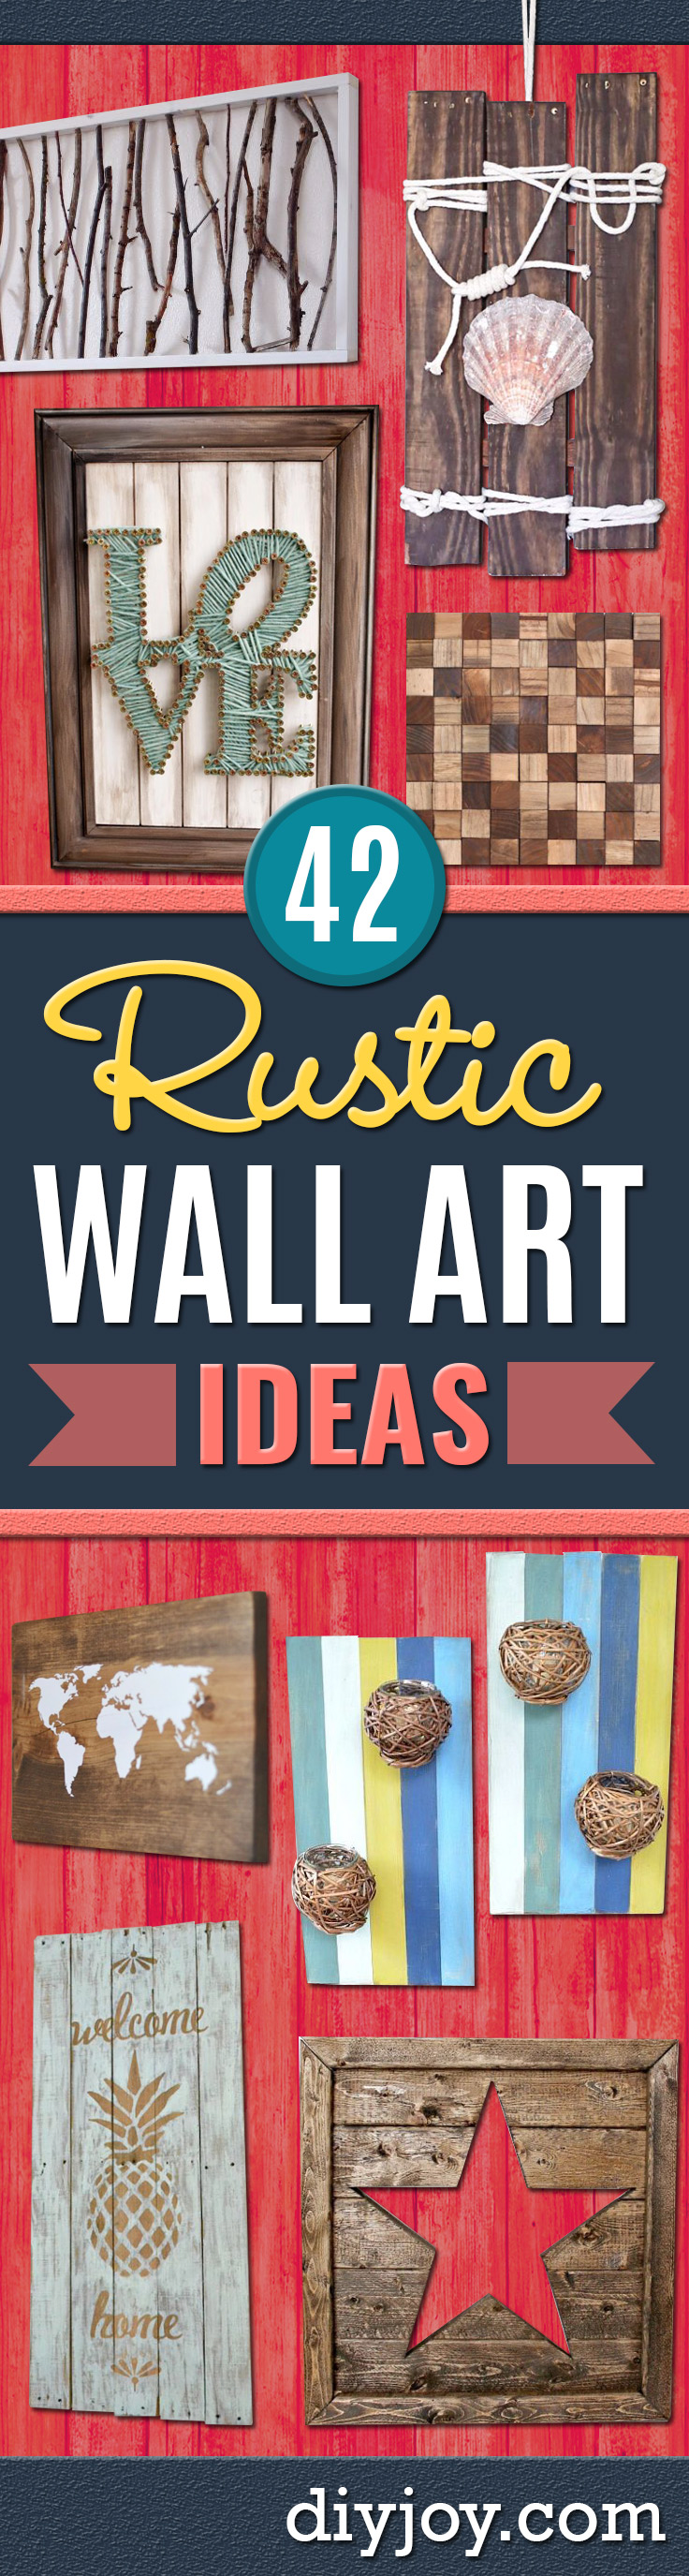 Rustic Wall Art Ideas - DIY Farmhouse Wall Art and Vintage Decor for Walls - Country Crafts and Rustic Home Decor Made Easy With Instructions and Tutorials - String Art, Repurposed Pallet Projects, Mason Jar Crafts, Vintage Signs, Word Art and Letters, Monograms and Sewing Projects http://diyjoy.com/rustic-wall-art-ideas